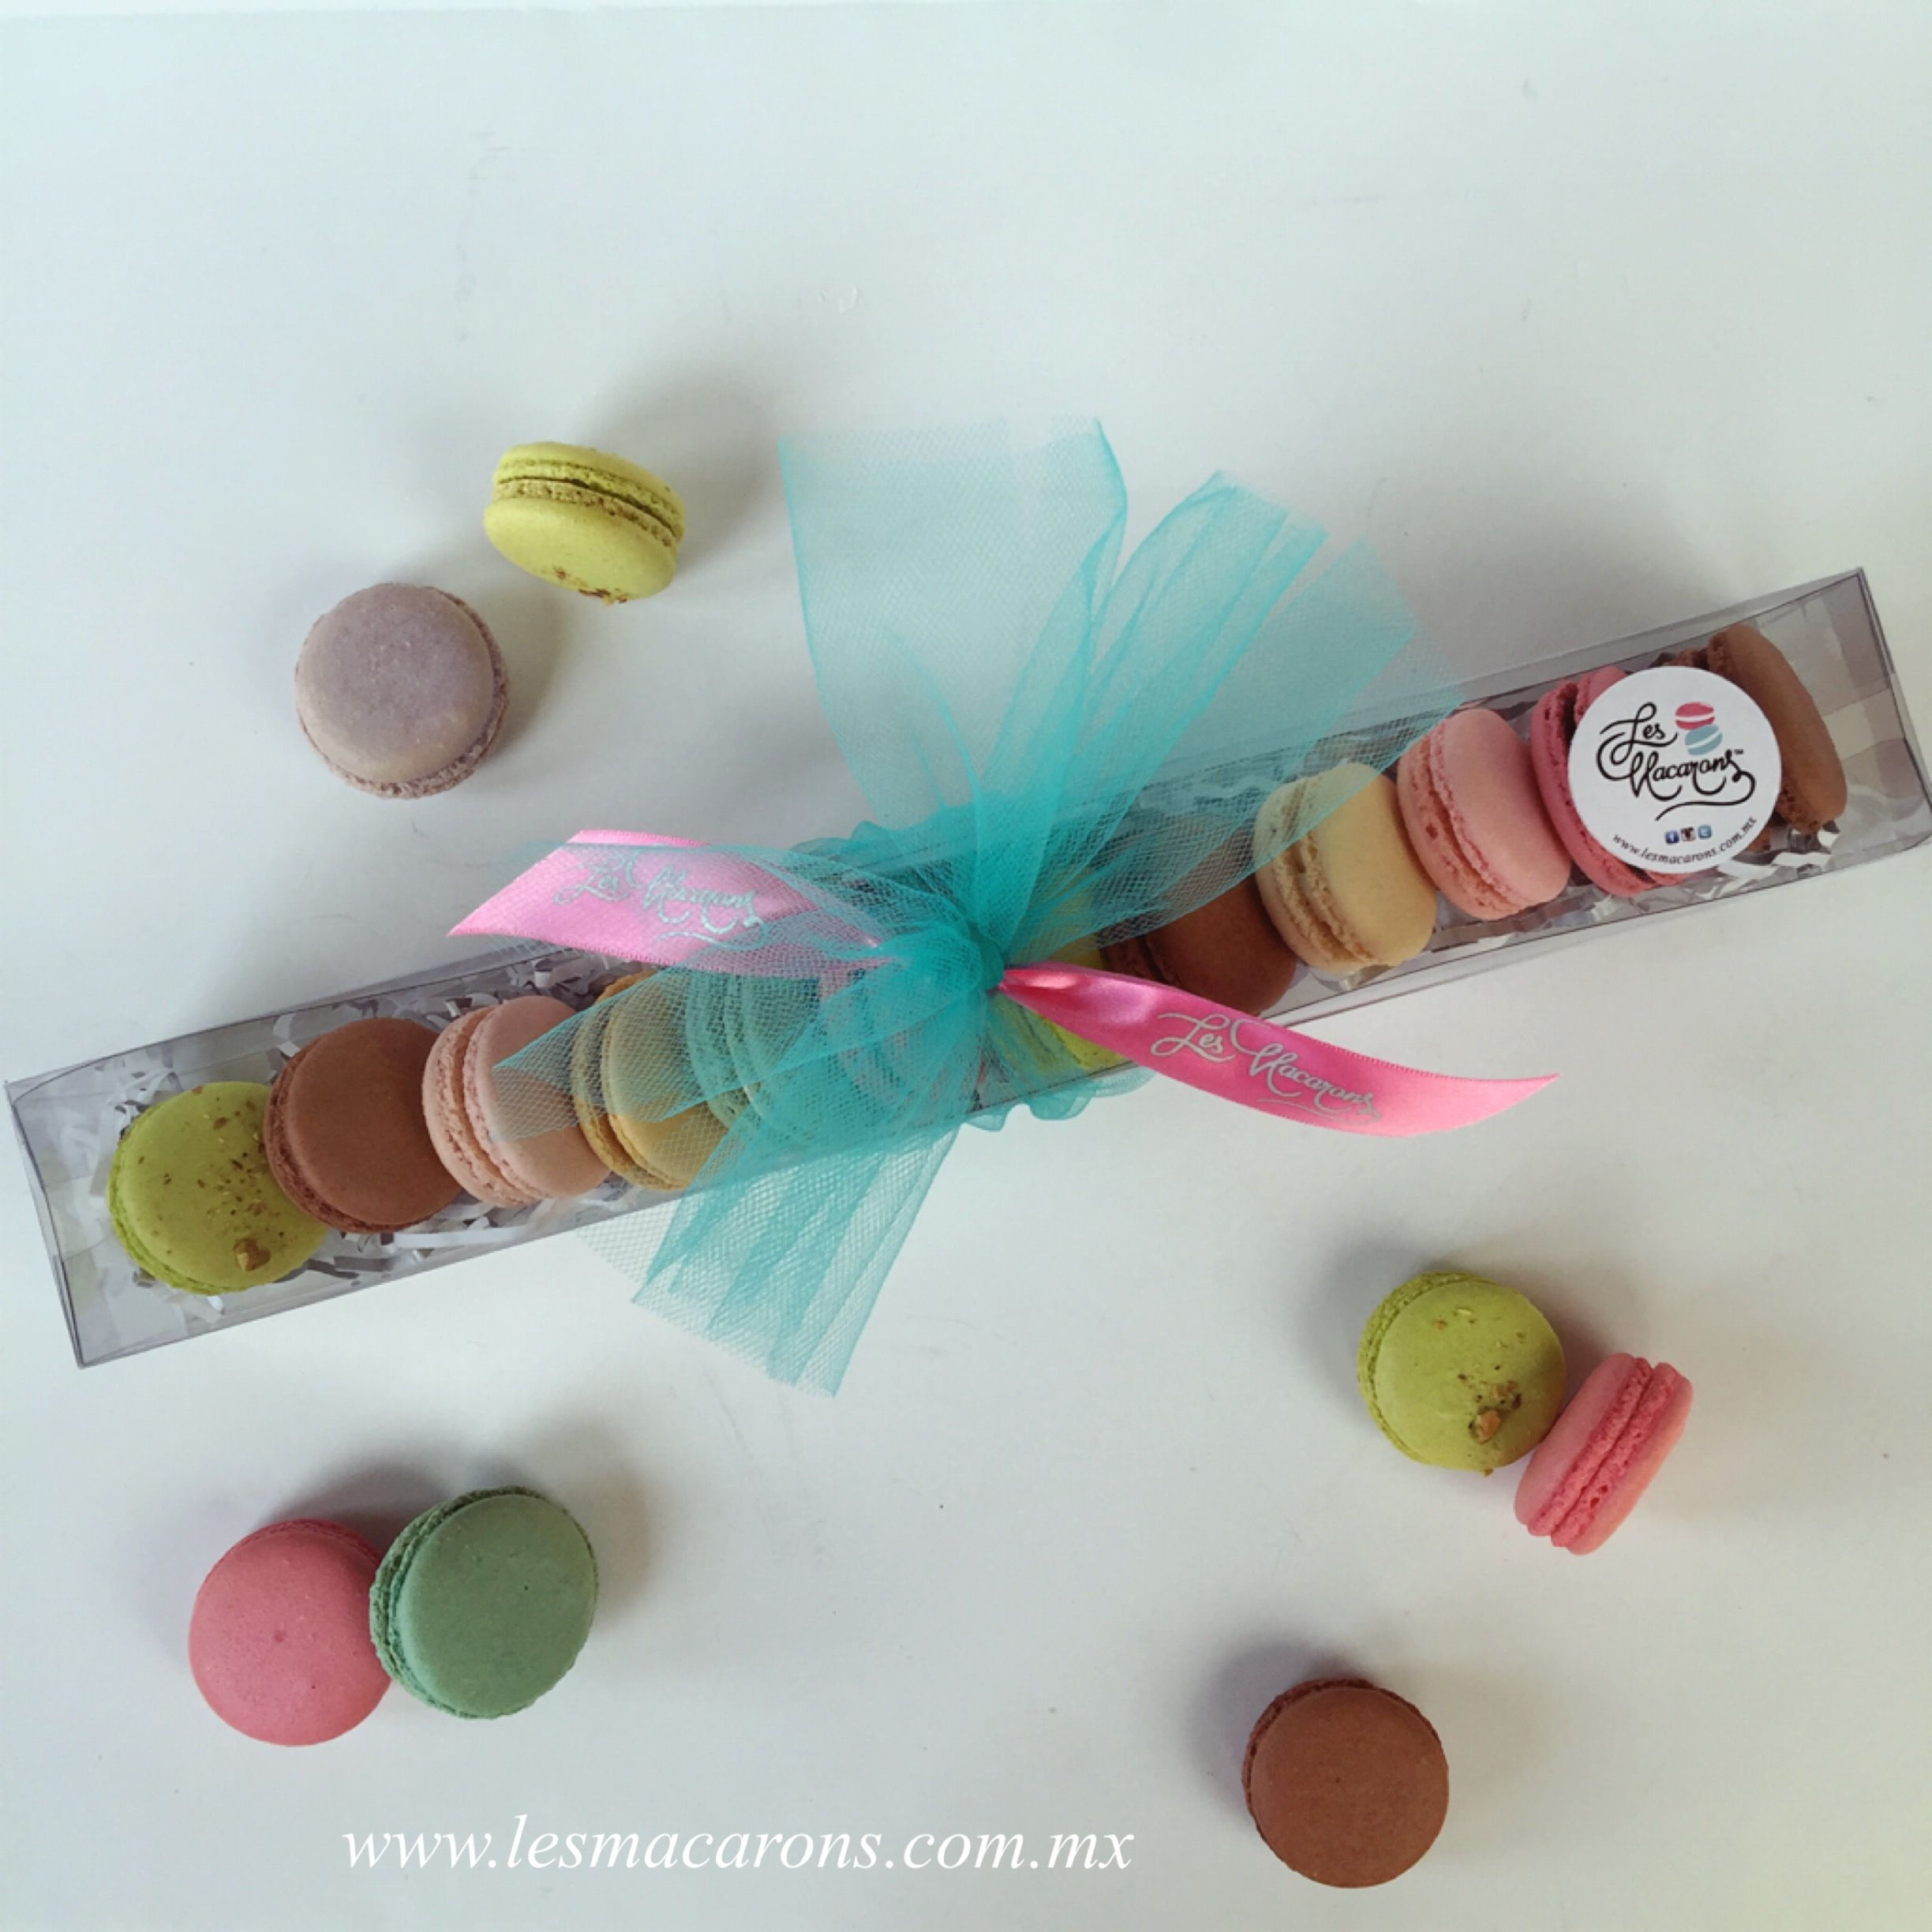 French macarons valle de texas les macarons www